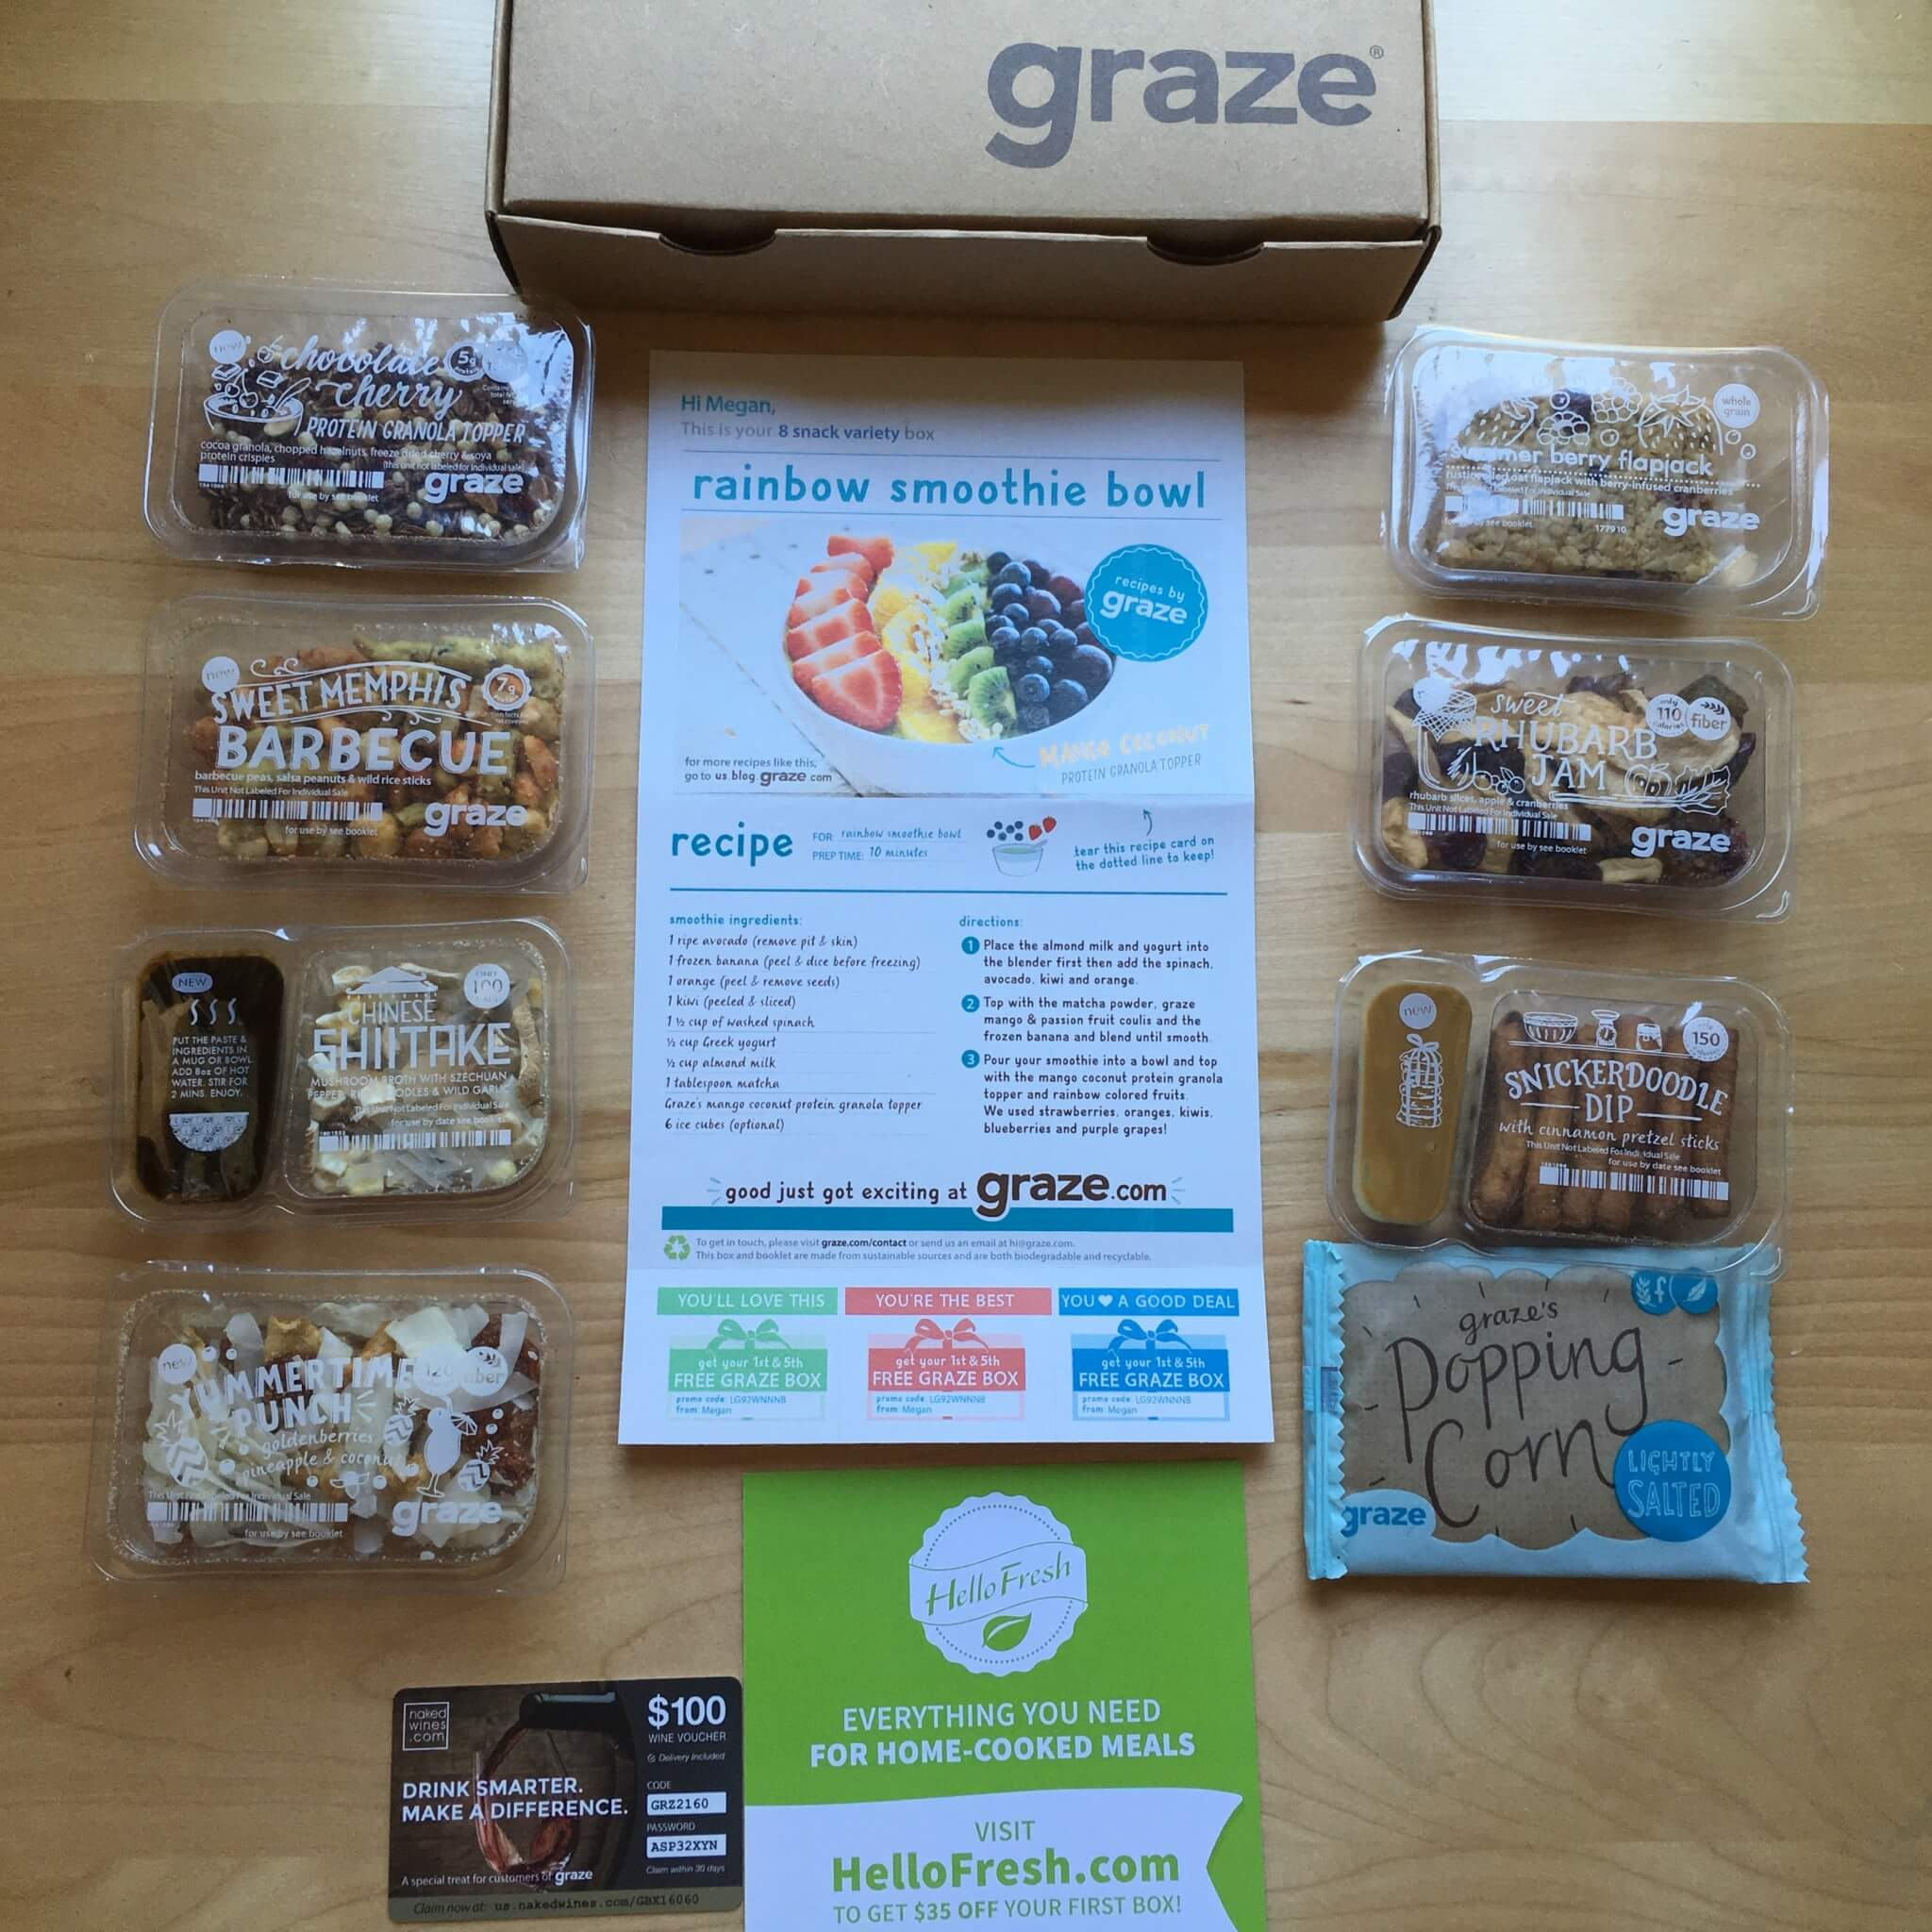 Graze August 2016 Subscription Box Review & Free Box Coupon